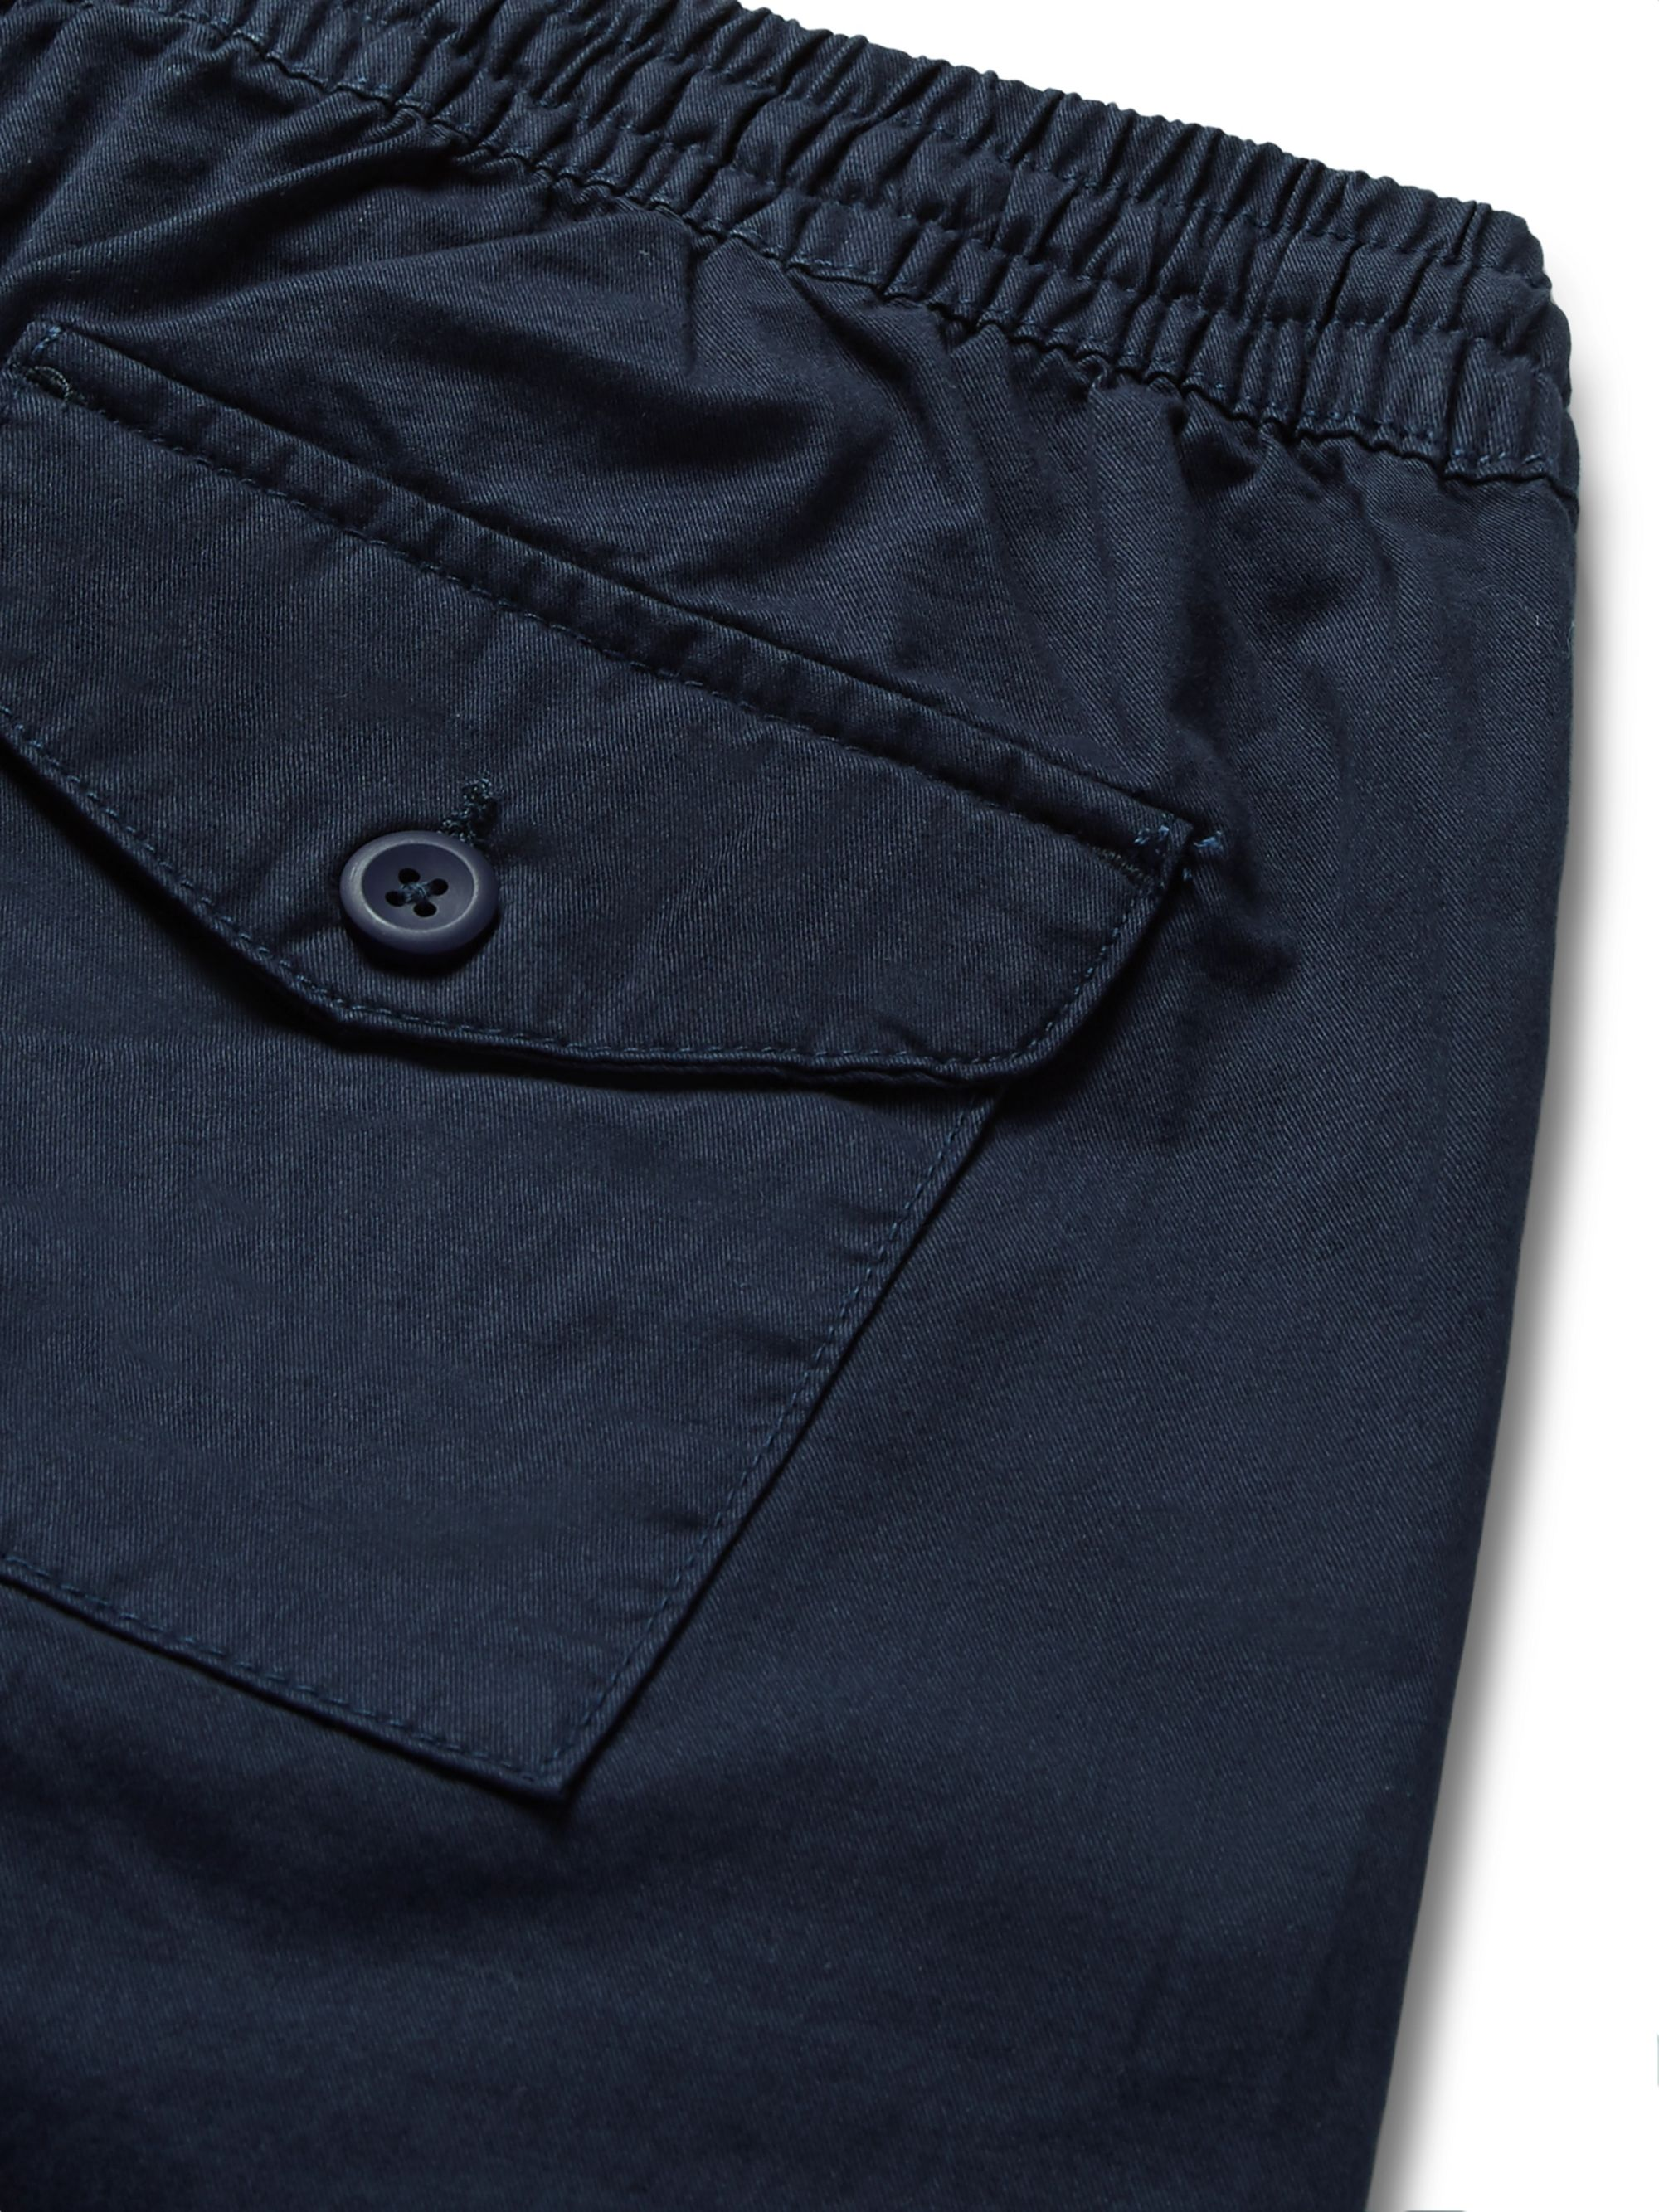 Onia Aiden Slim-Fit Cotton-Twill Drawstring Chino Shorts